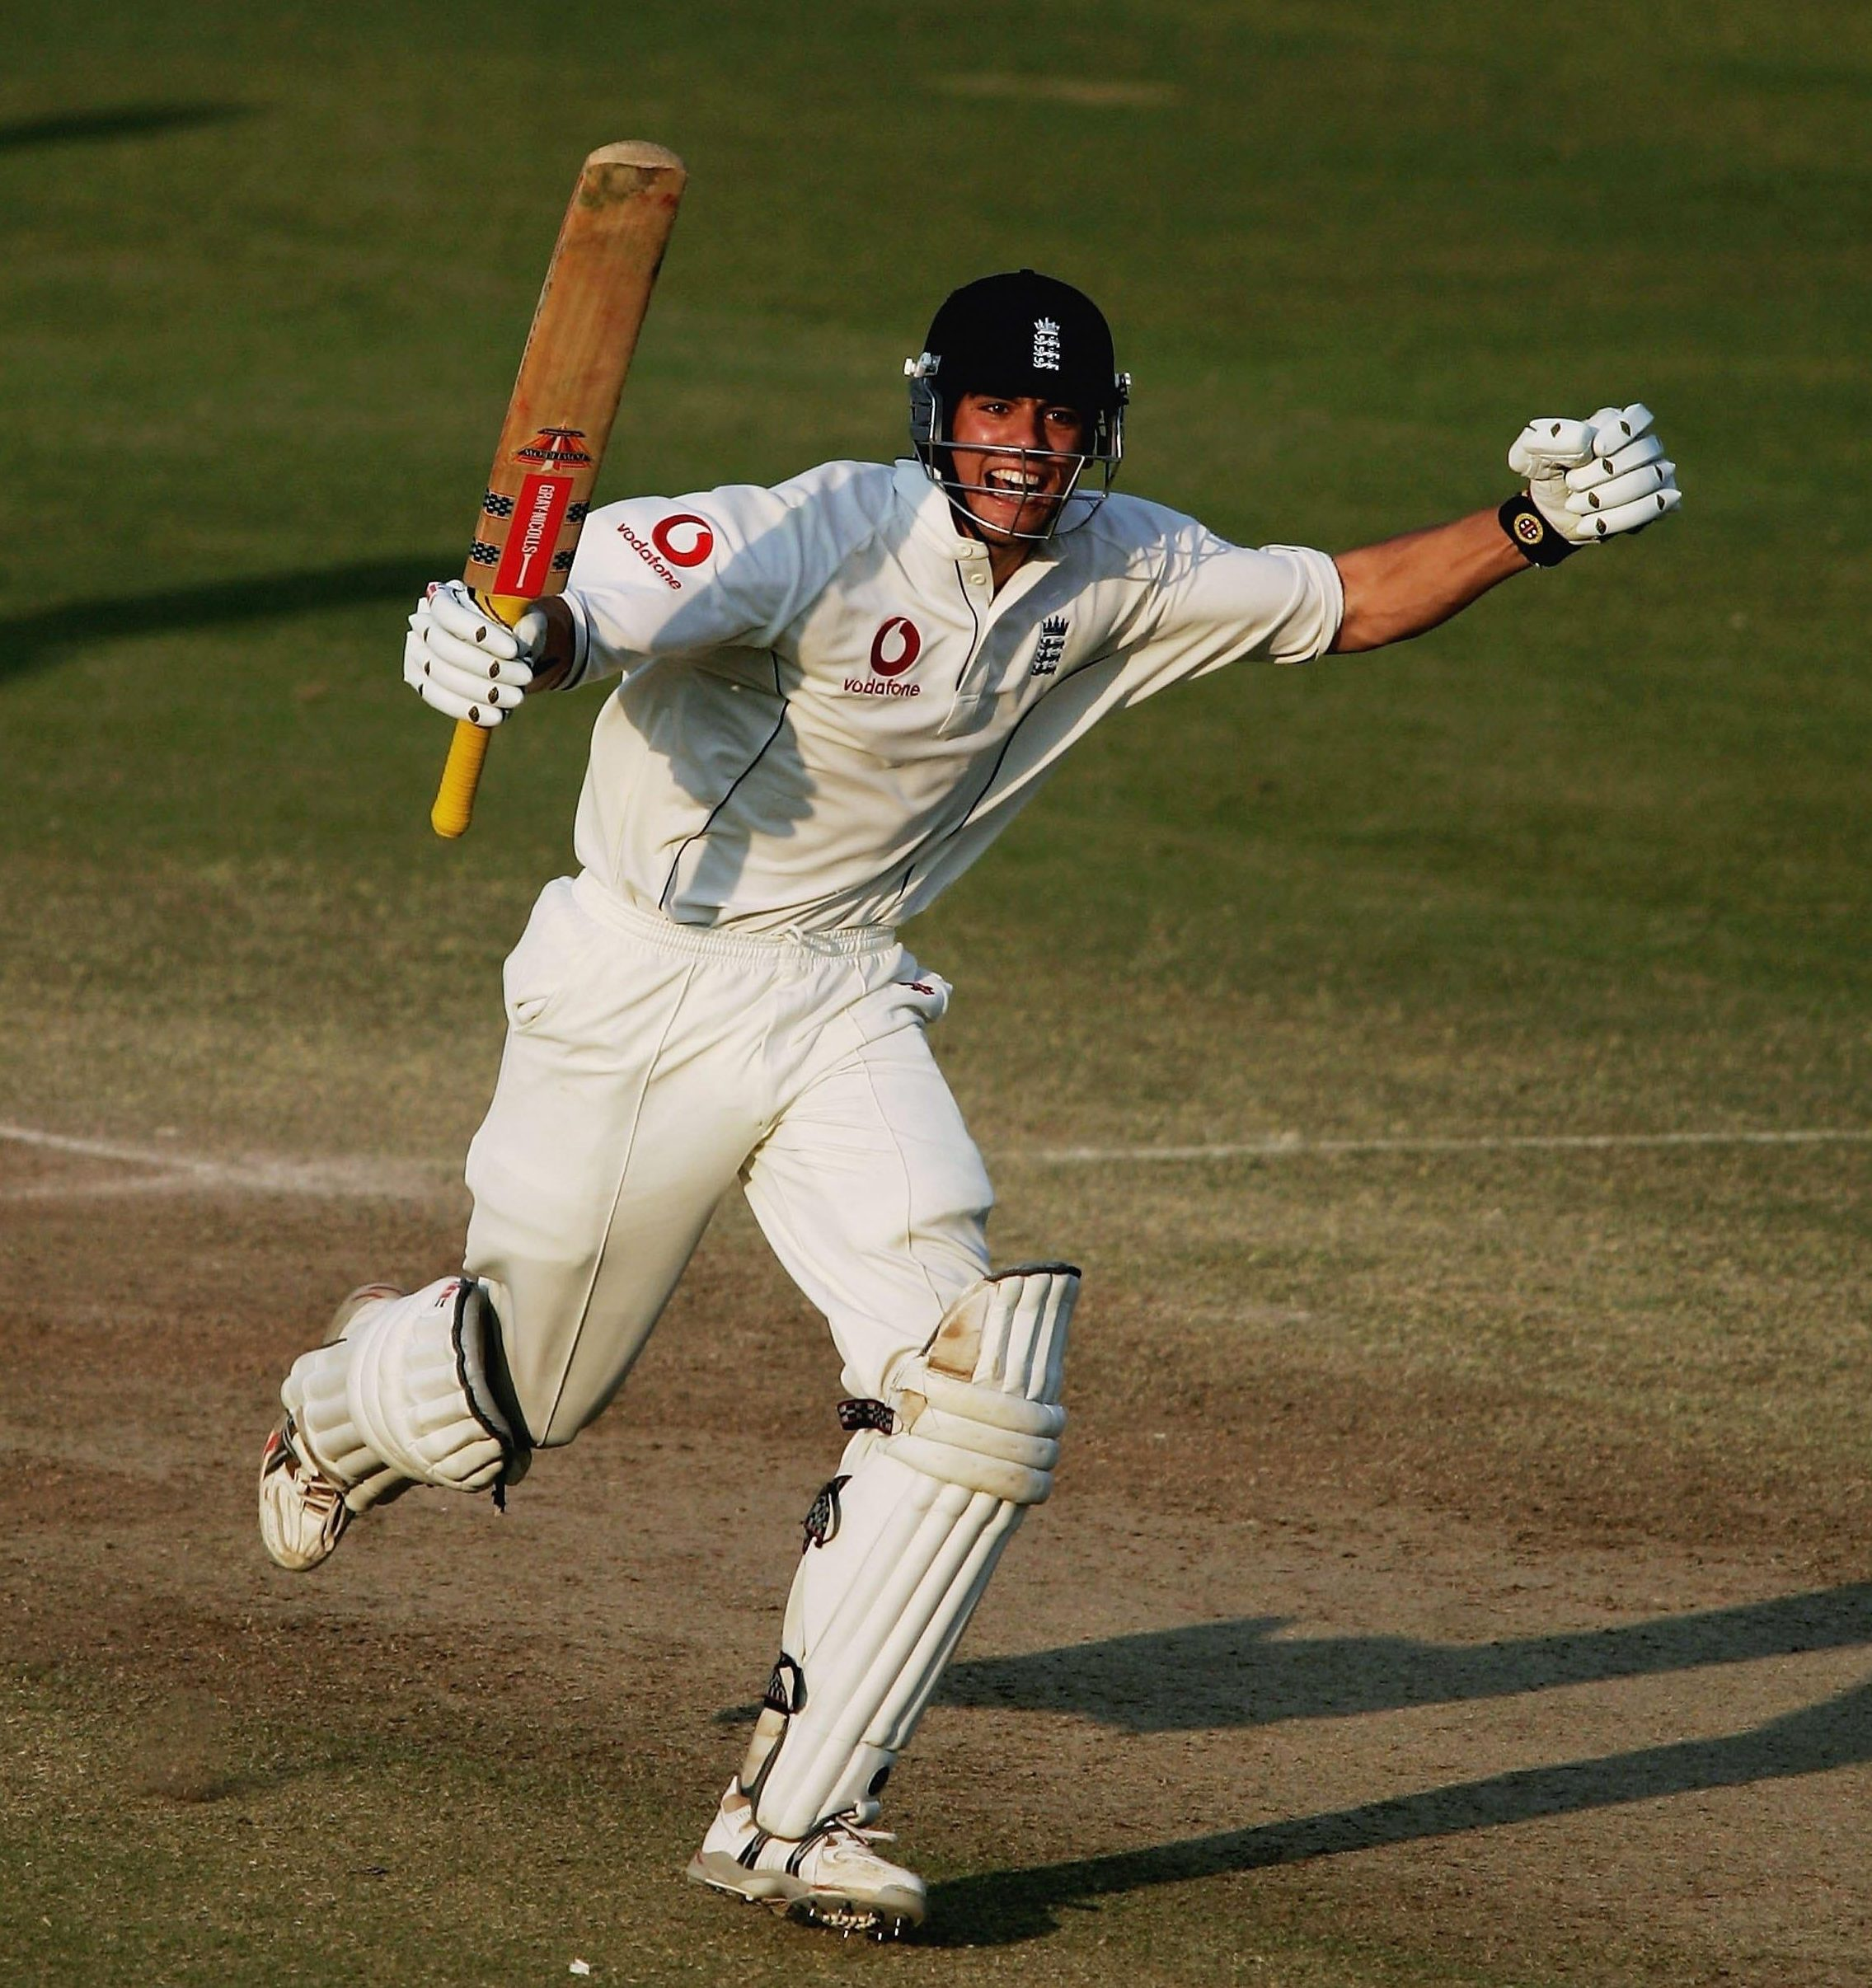 Alastair Cook has been an England Test team ever-present for 12 years